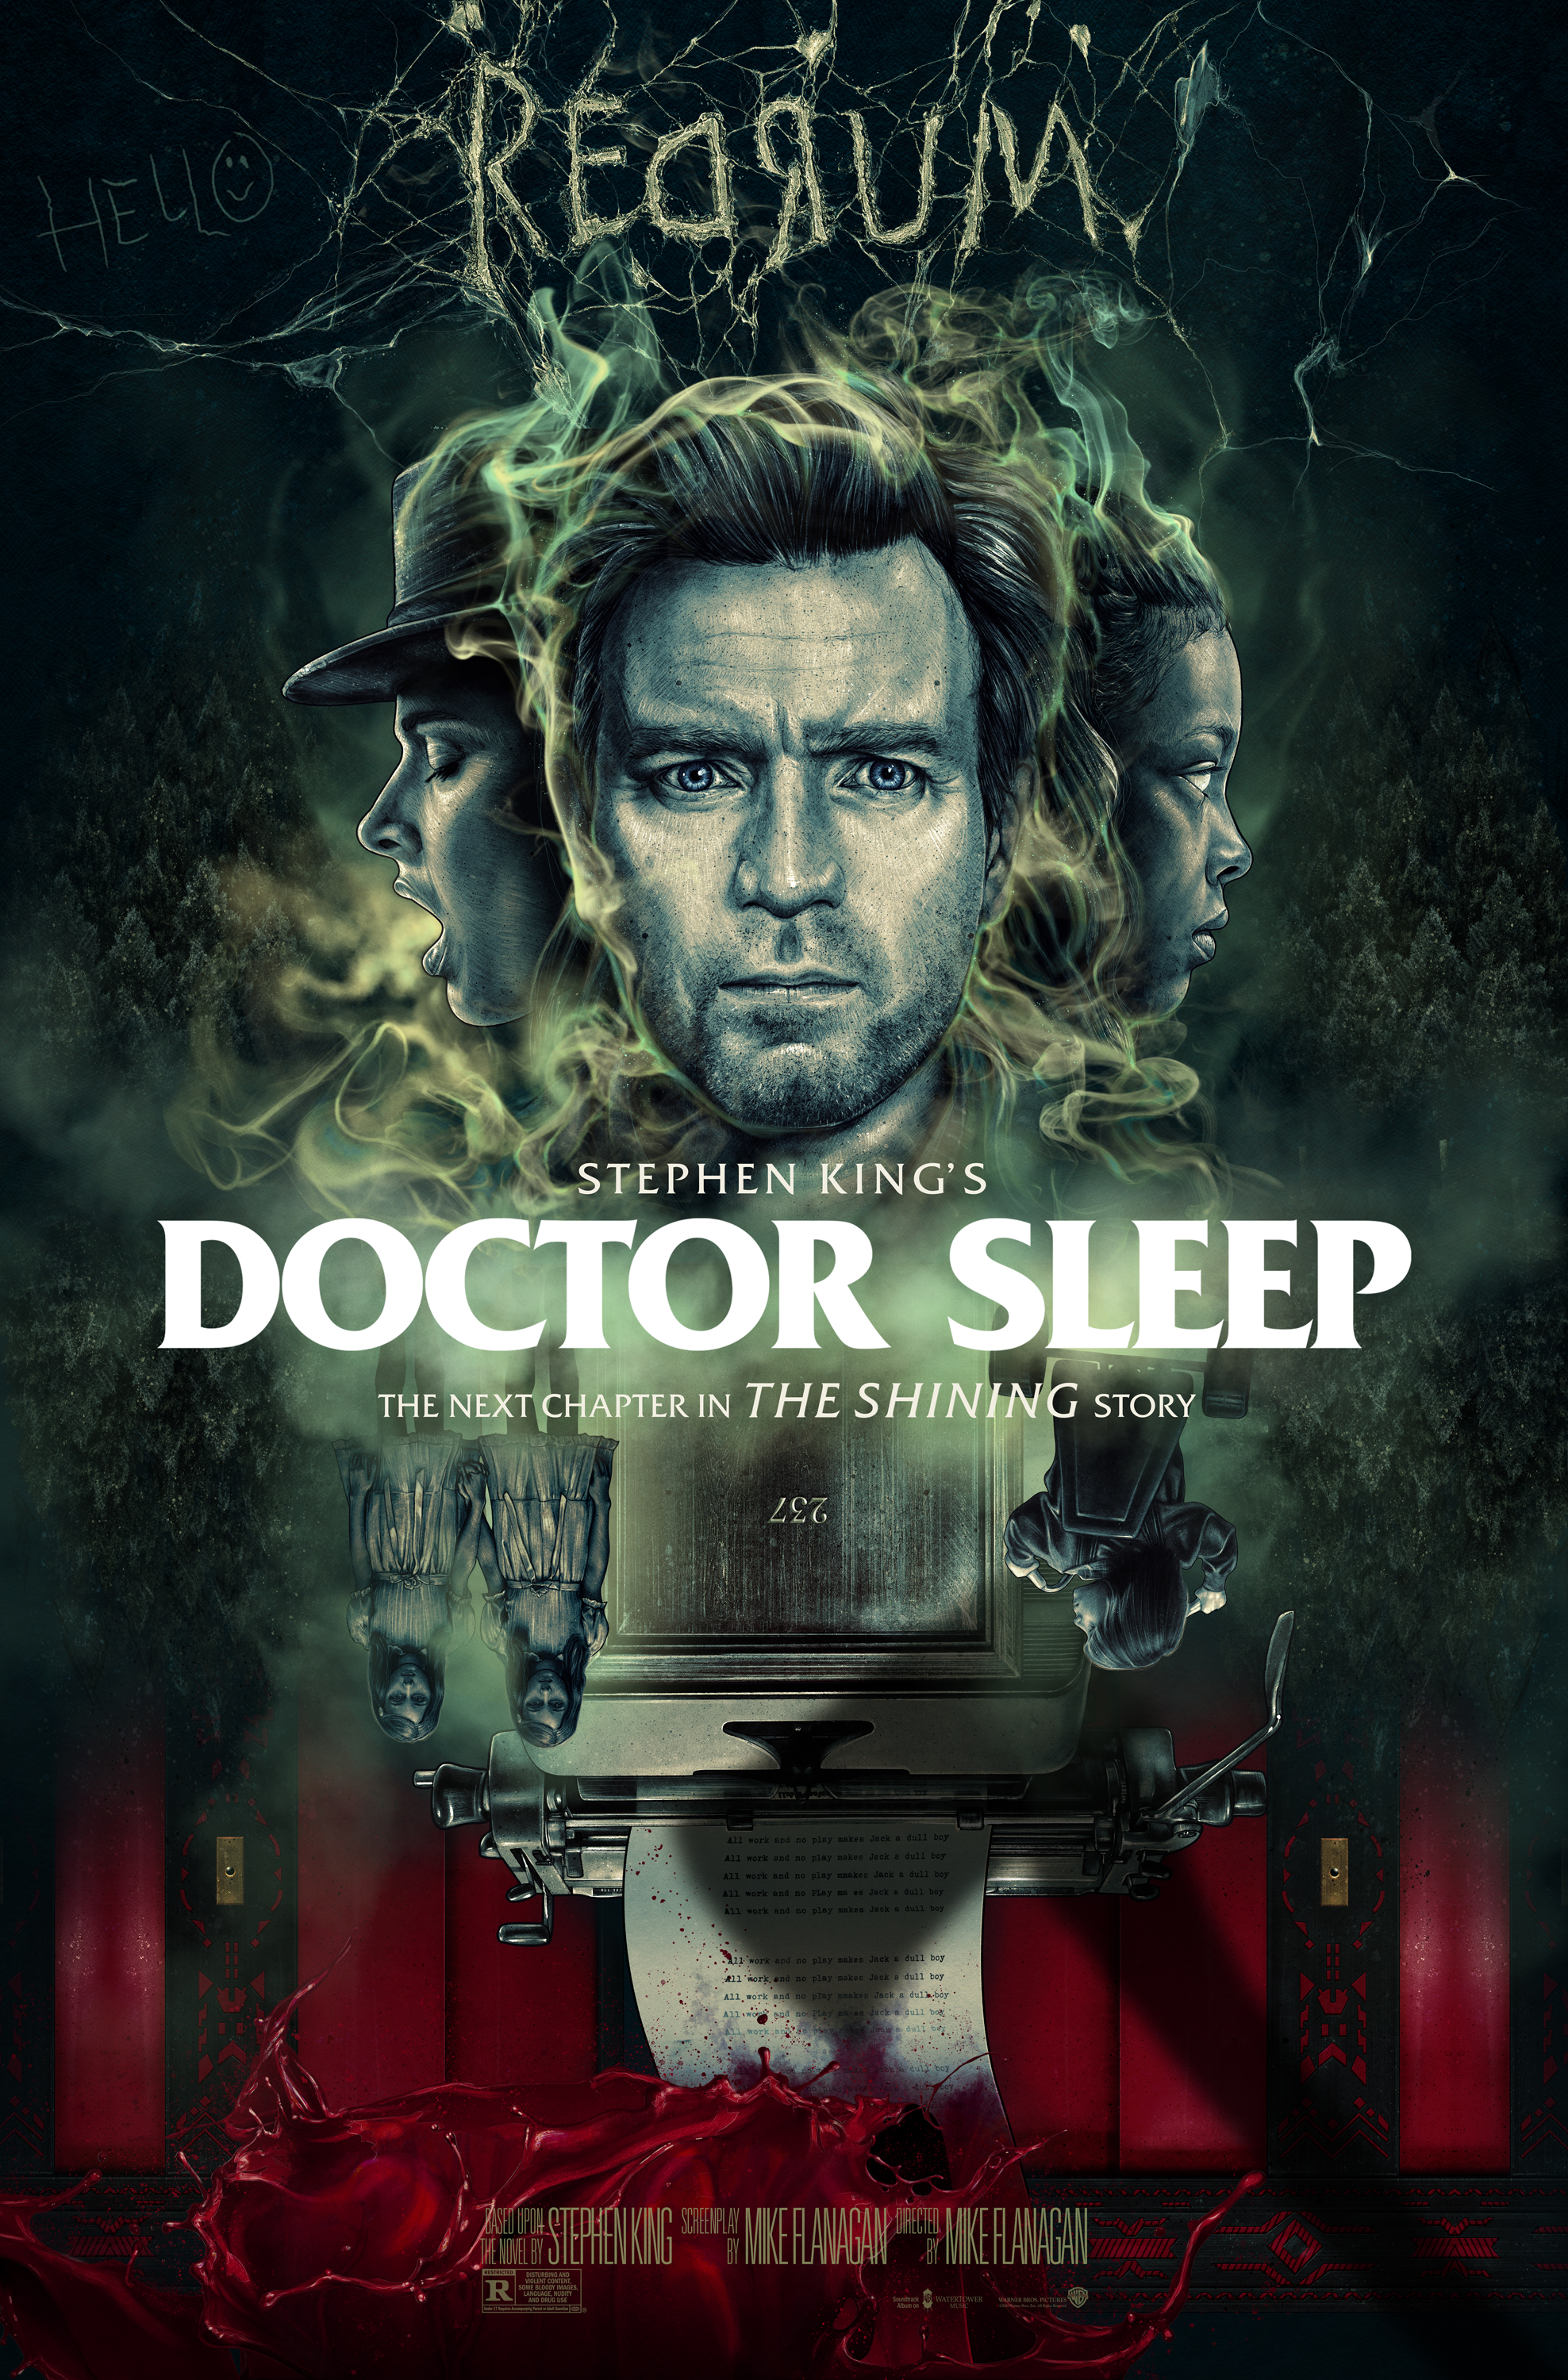 Doctor Who Christmas Special Theaters.See Stephen King S Doctor Sleep Early With Fandango Fandango